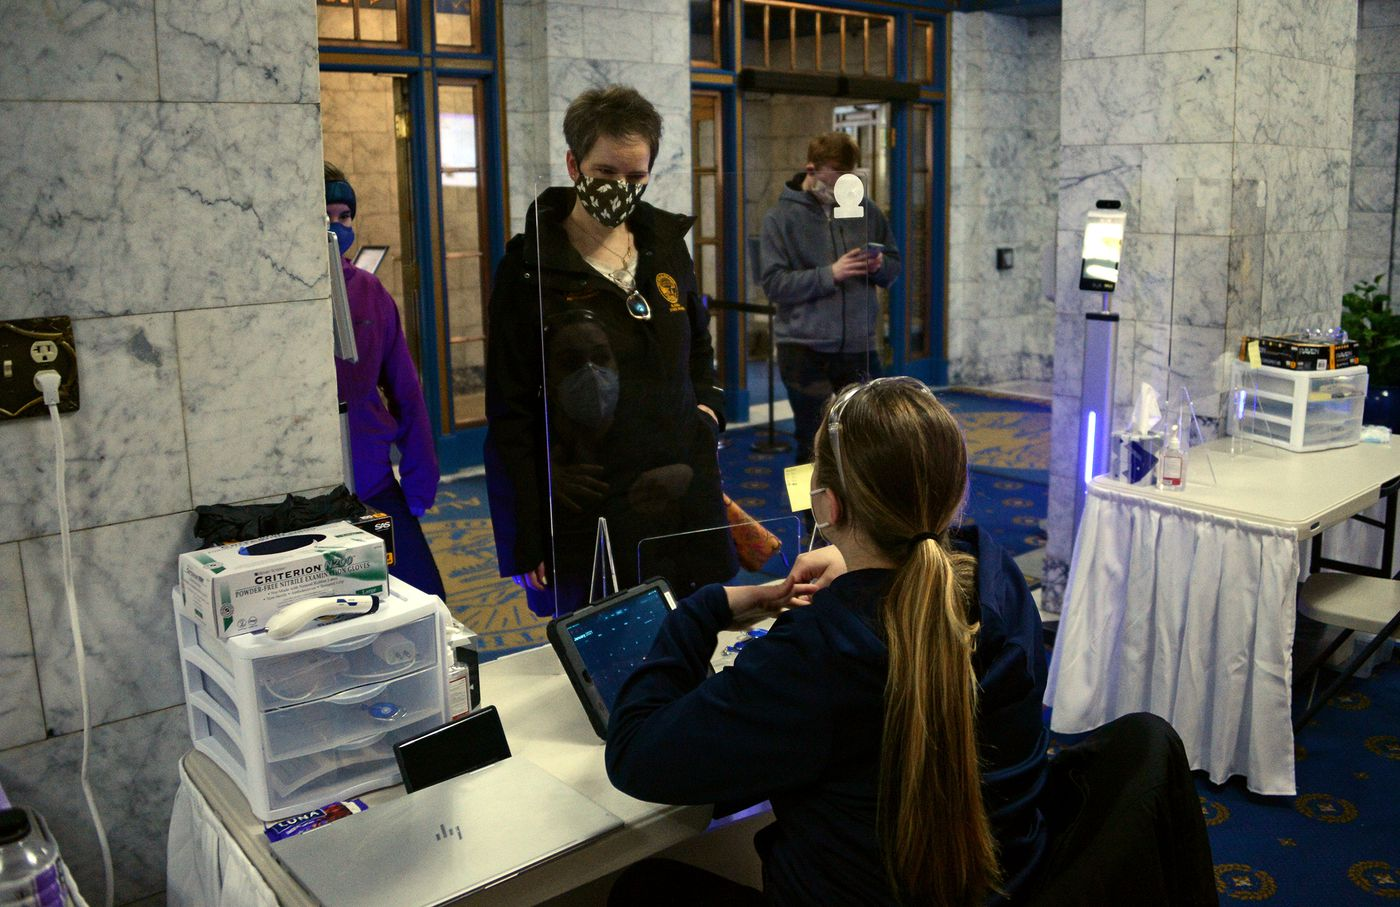 Rep. Sarah Vance, R-Homer, talks to a COVID-19 screener in the lobby of the Alaska State Capitol on Wednesday, Jan. 13, 2021. At background is Rep. David Eastman, R-Wasilla. (James Brooks / ADN)